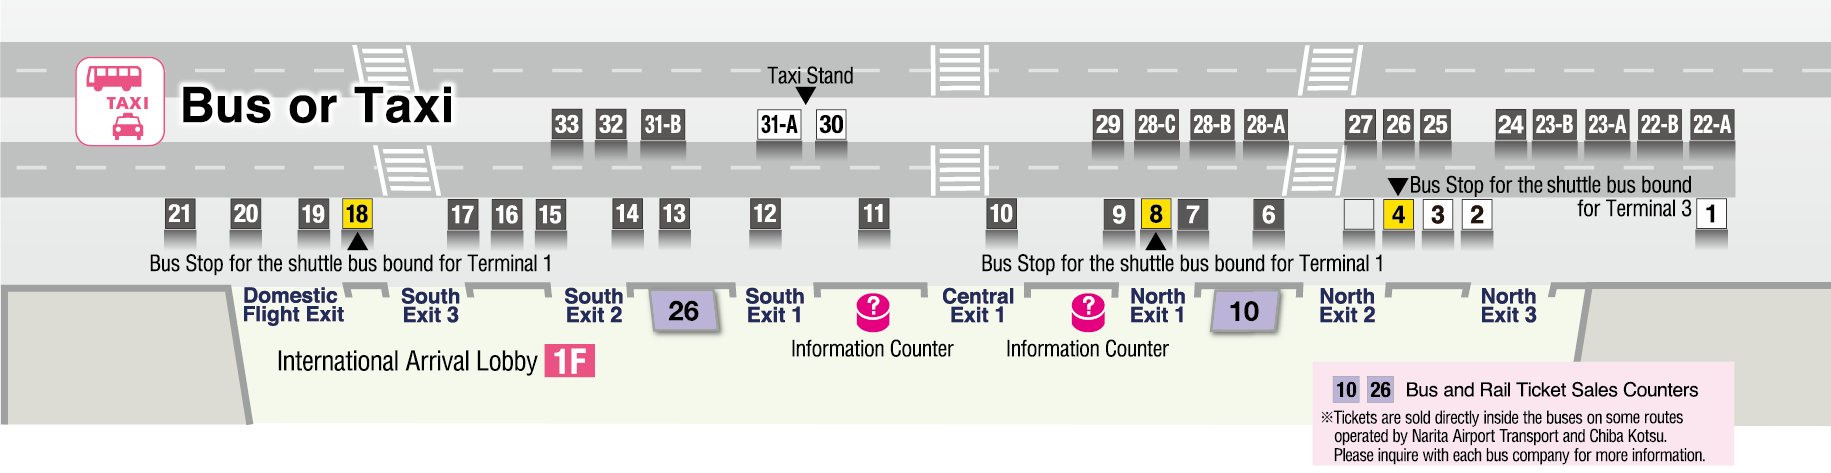 Map of taxi stands at Terminal 2.